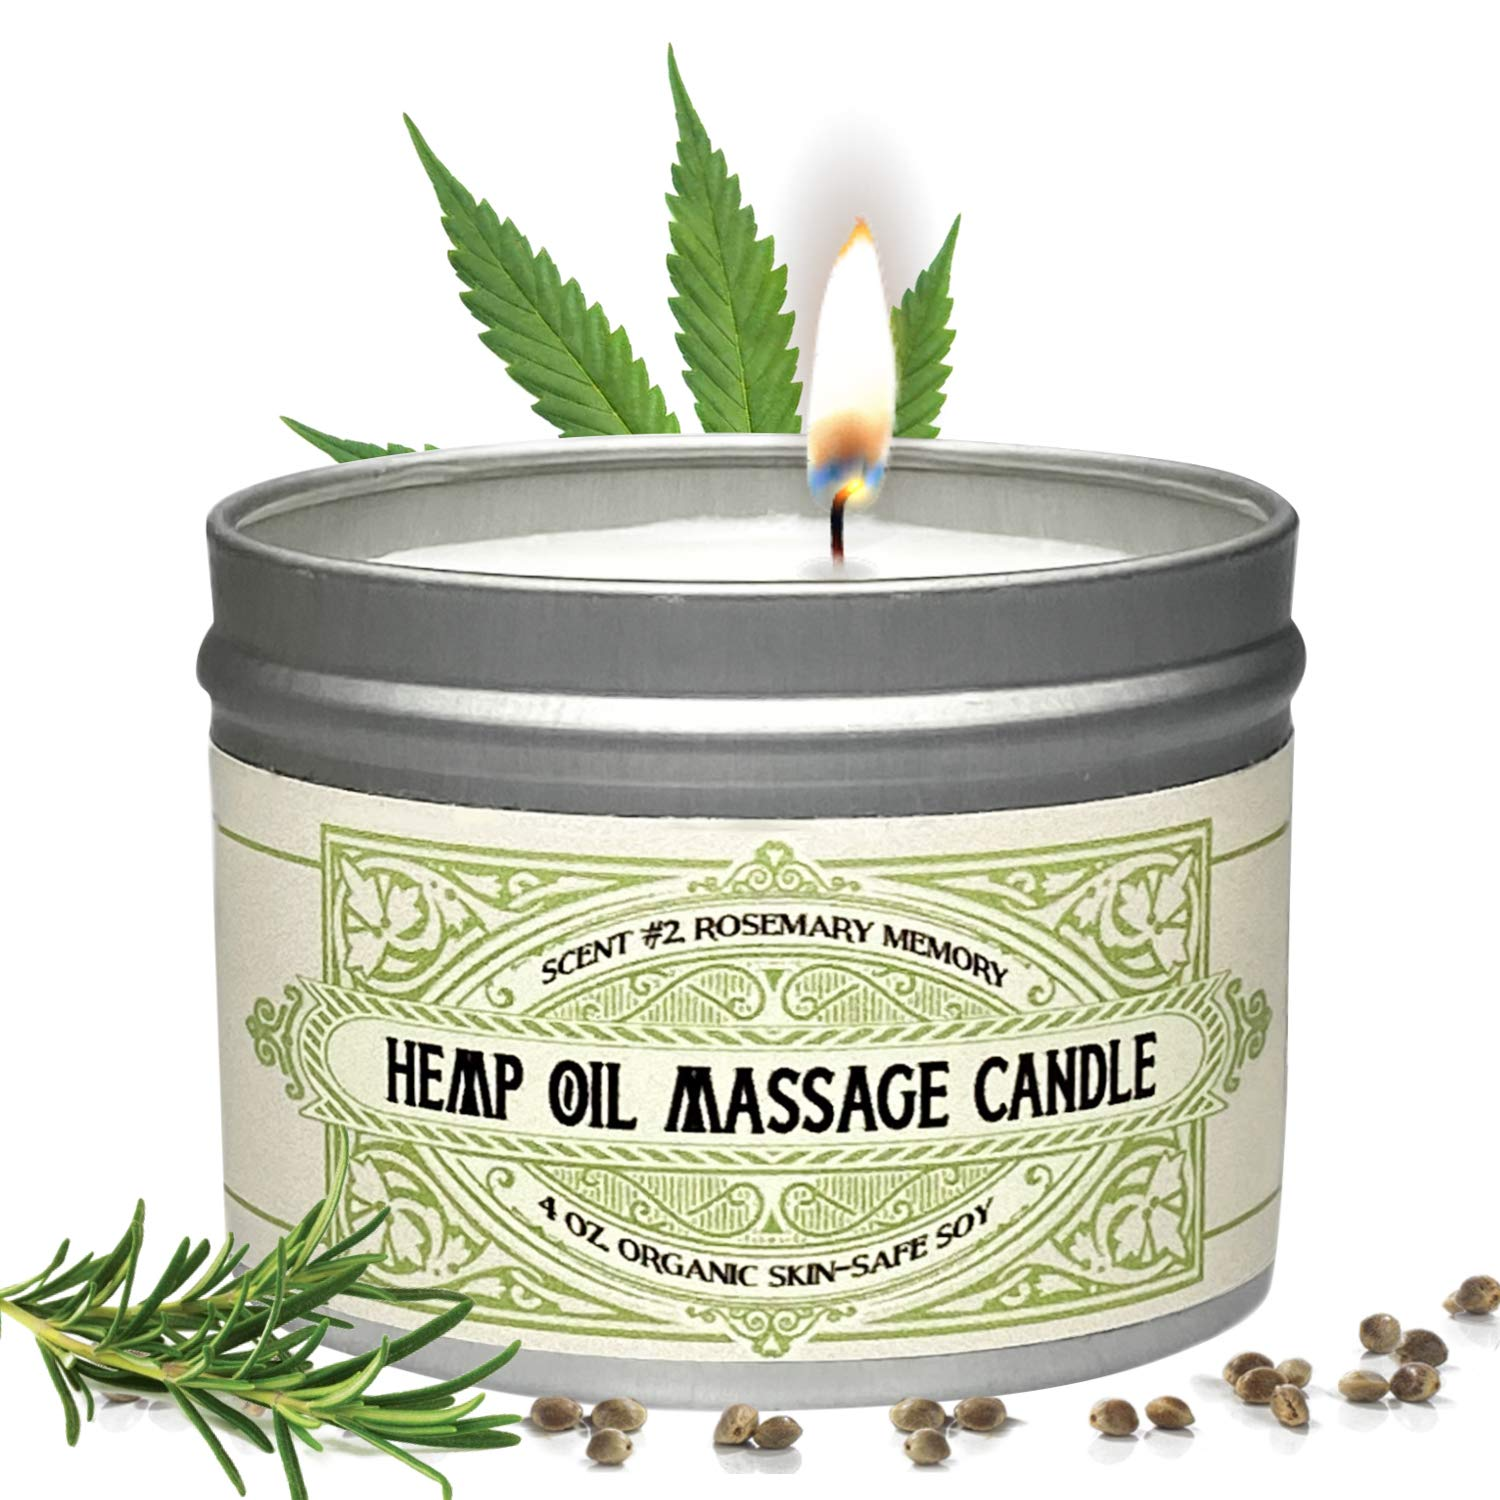 Massage Oil Candle For Pure Relaxation - Made From Organic Hemp Seeds Oil - Amazing Gift For Women & Men By Alter Native - Made In The USA - Rosemary Scent - 4 oz